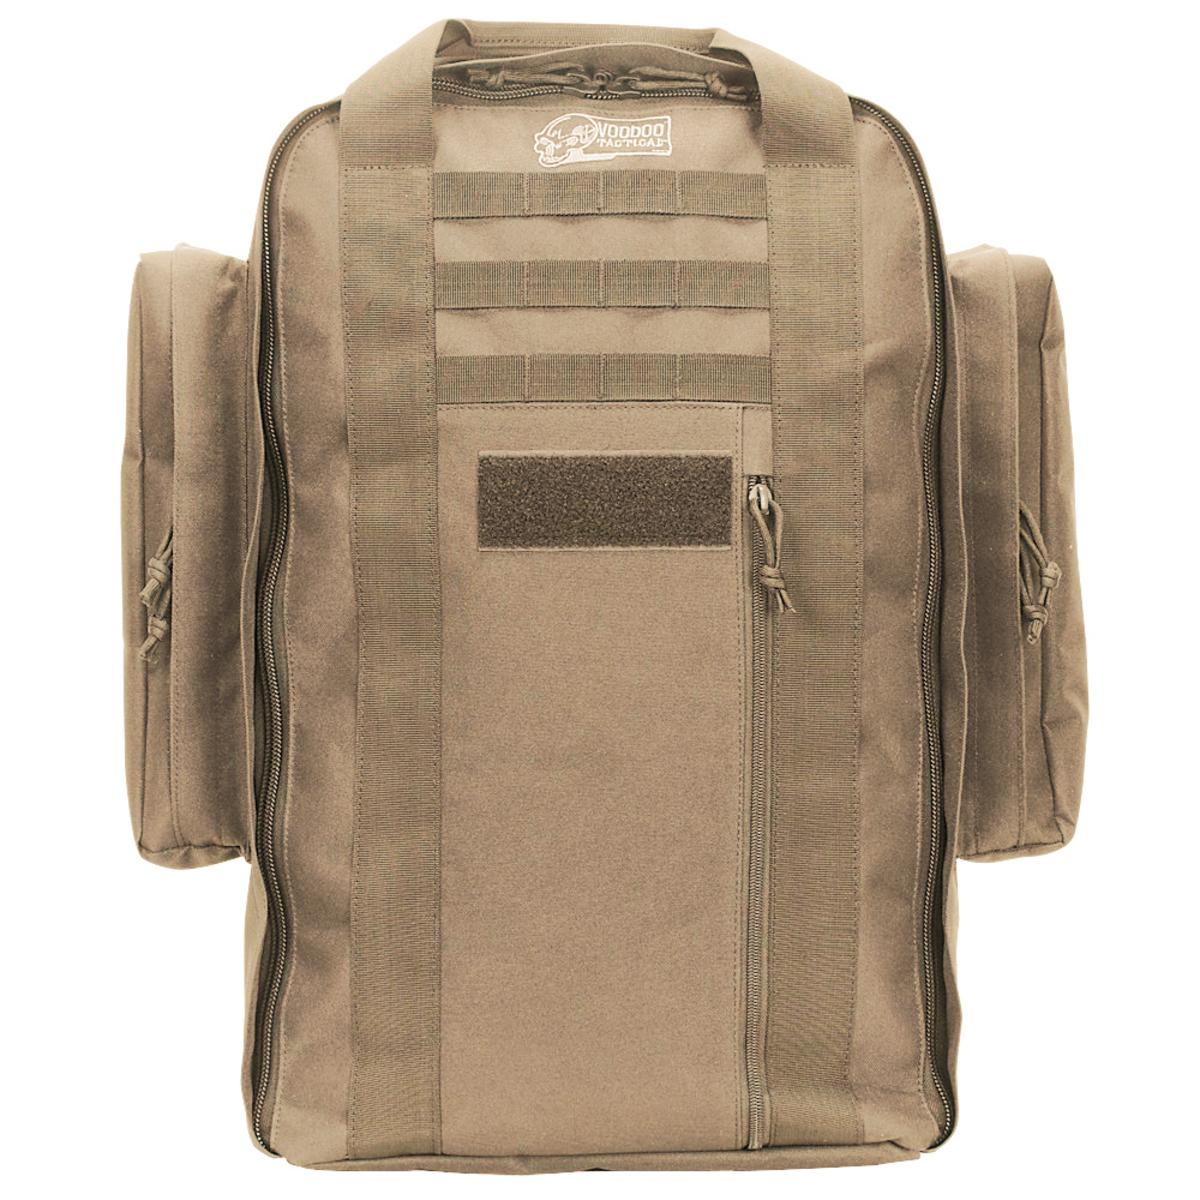 Voodoo Tactical 15-0152 Travel Storage Bag Pack w Shoulder Straps and Waist Belt by Voodoo Tactical